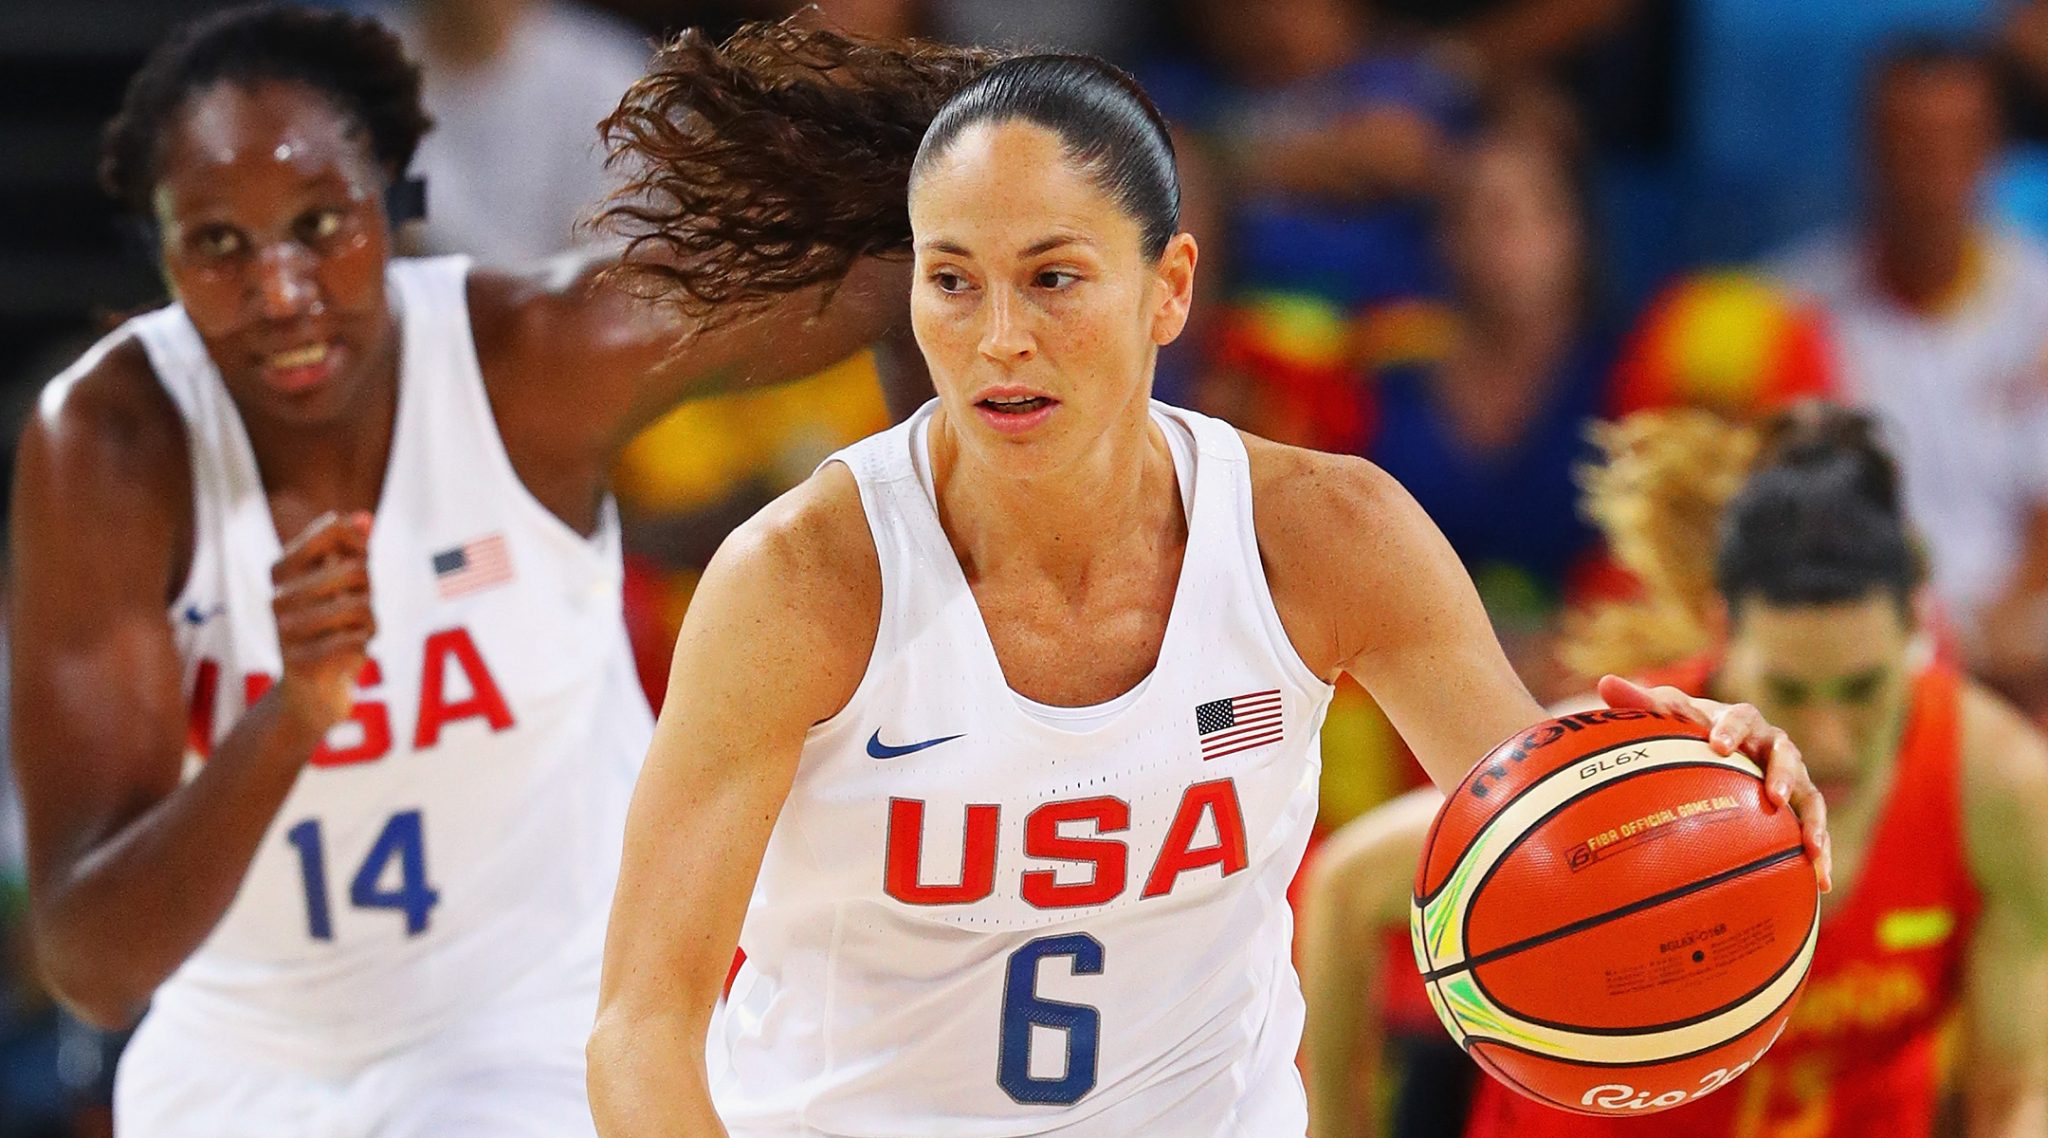 Sue Bird drives to the basket in the women's gold medal game between the United States and Spain at the 2016 Rio Olympic Games, Aug. 20, 2016. (Photo/JTA-Tom Pennington-Getty Images)